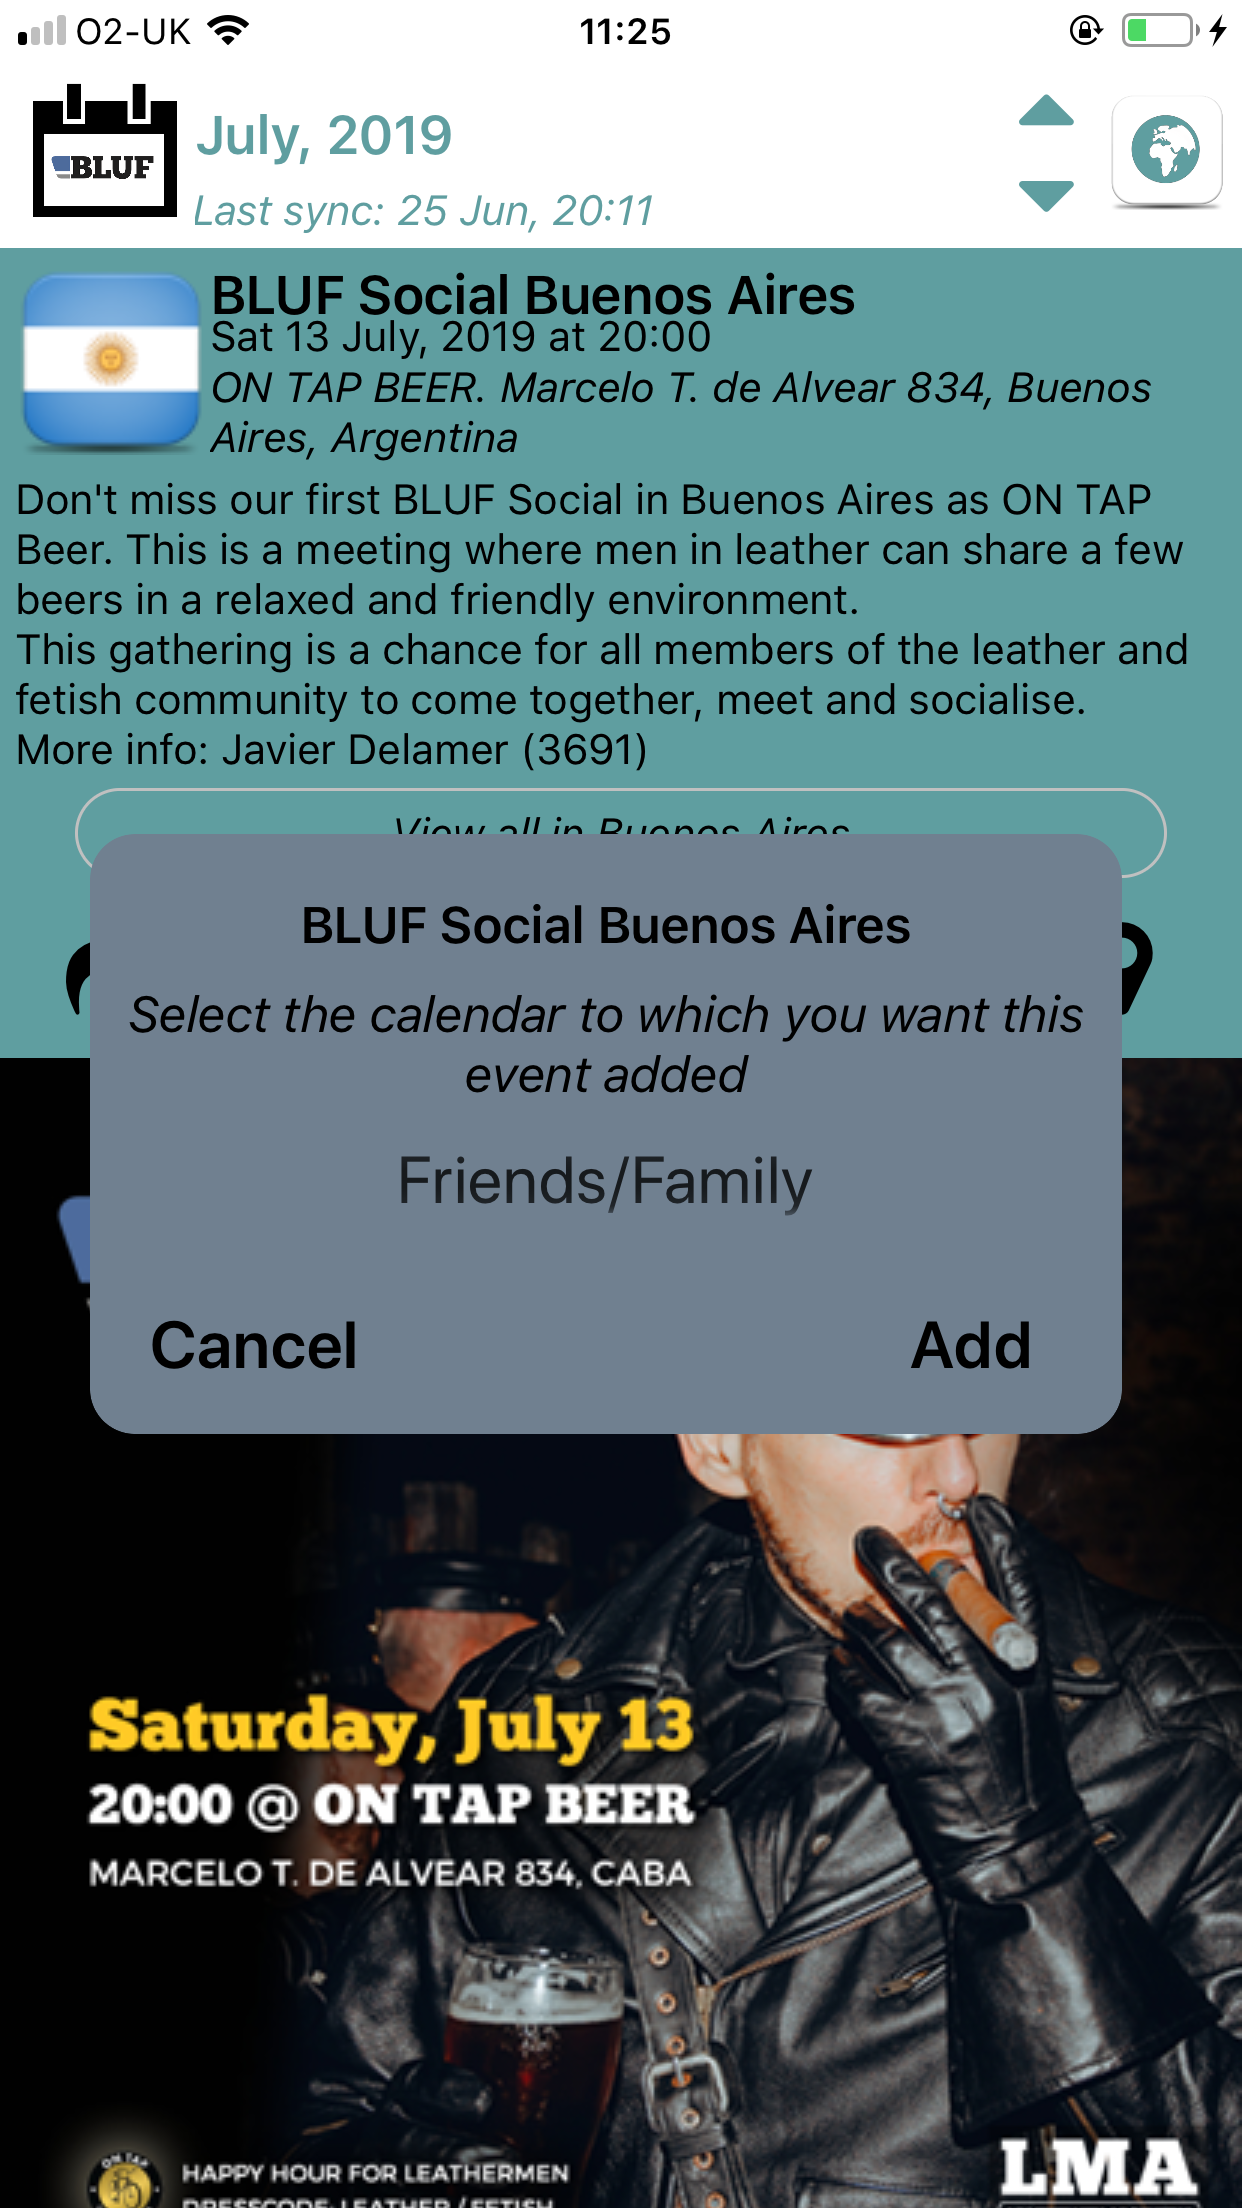 Adding an event to your personal calendar